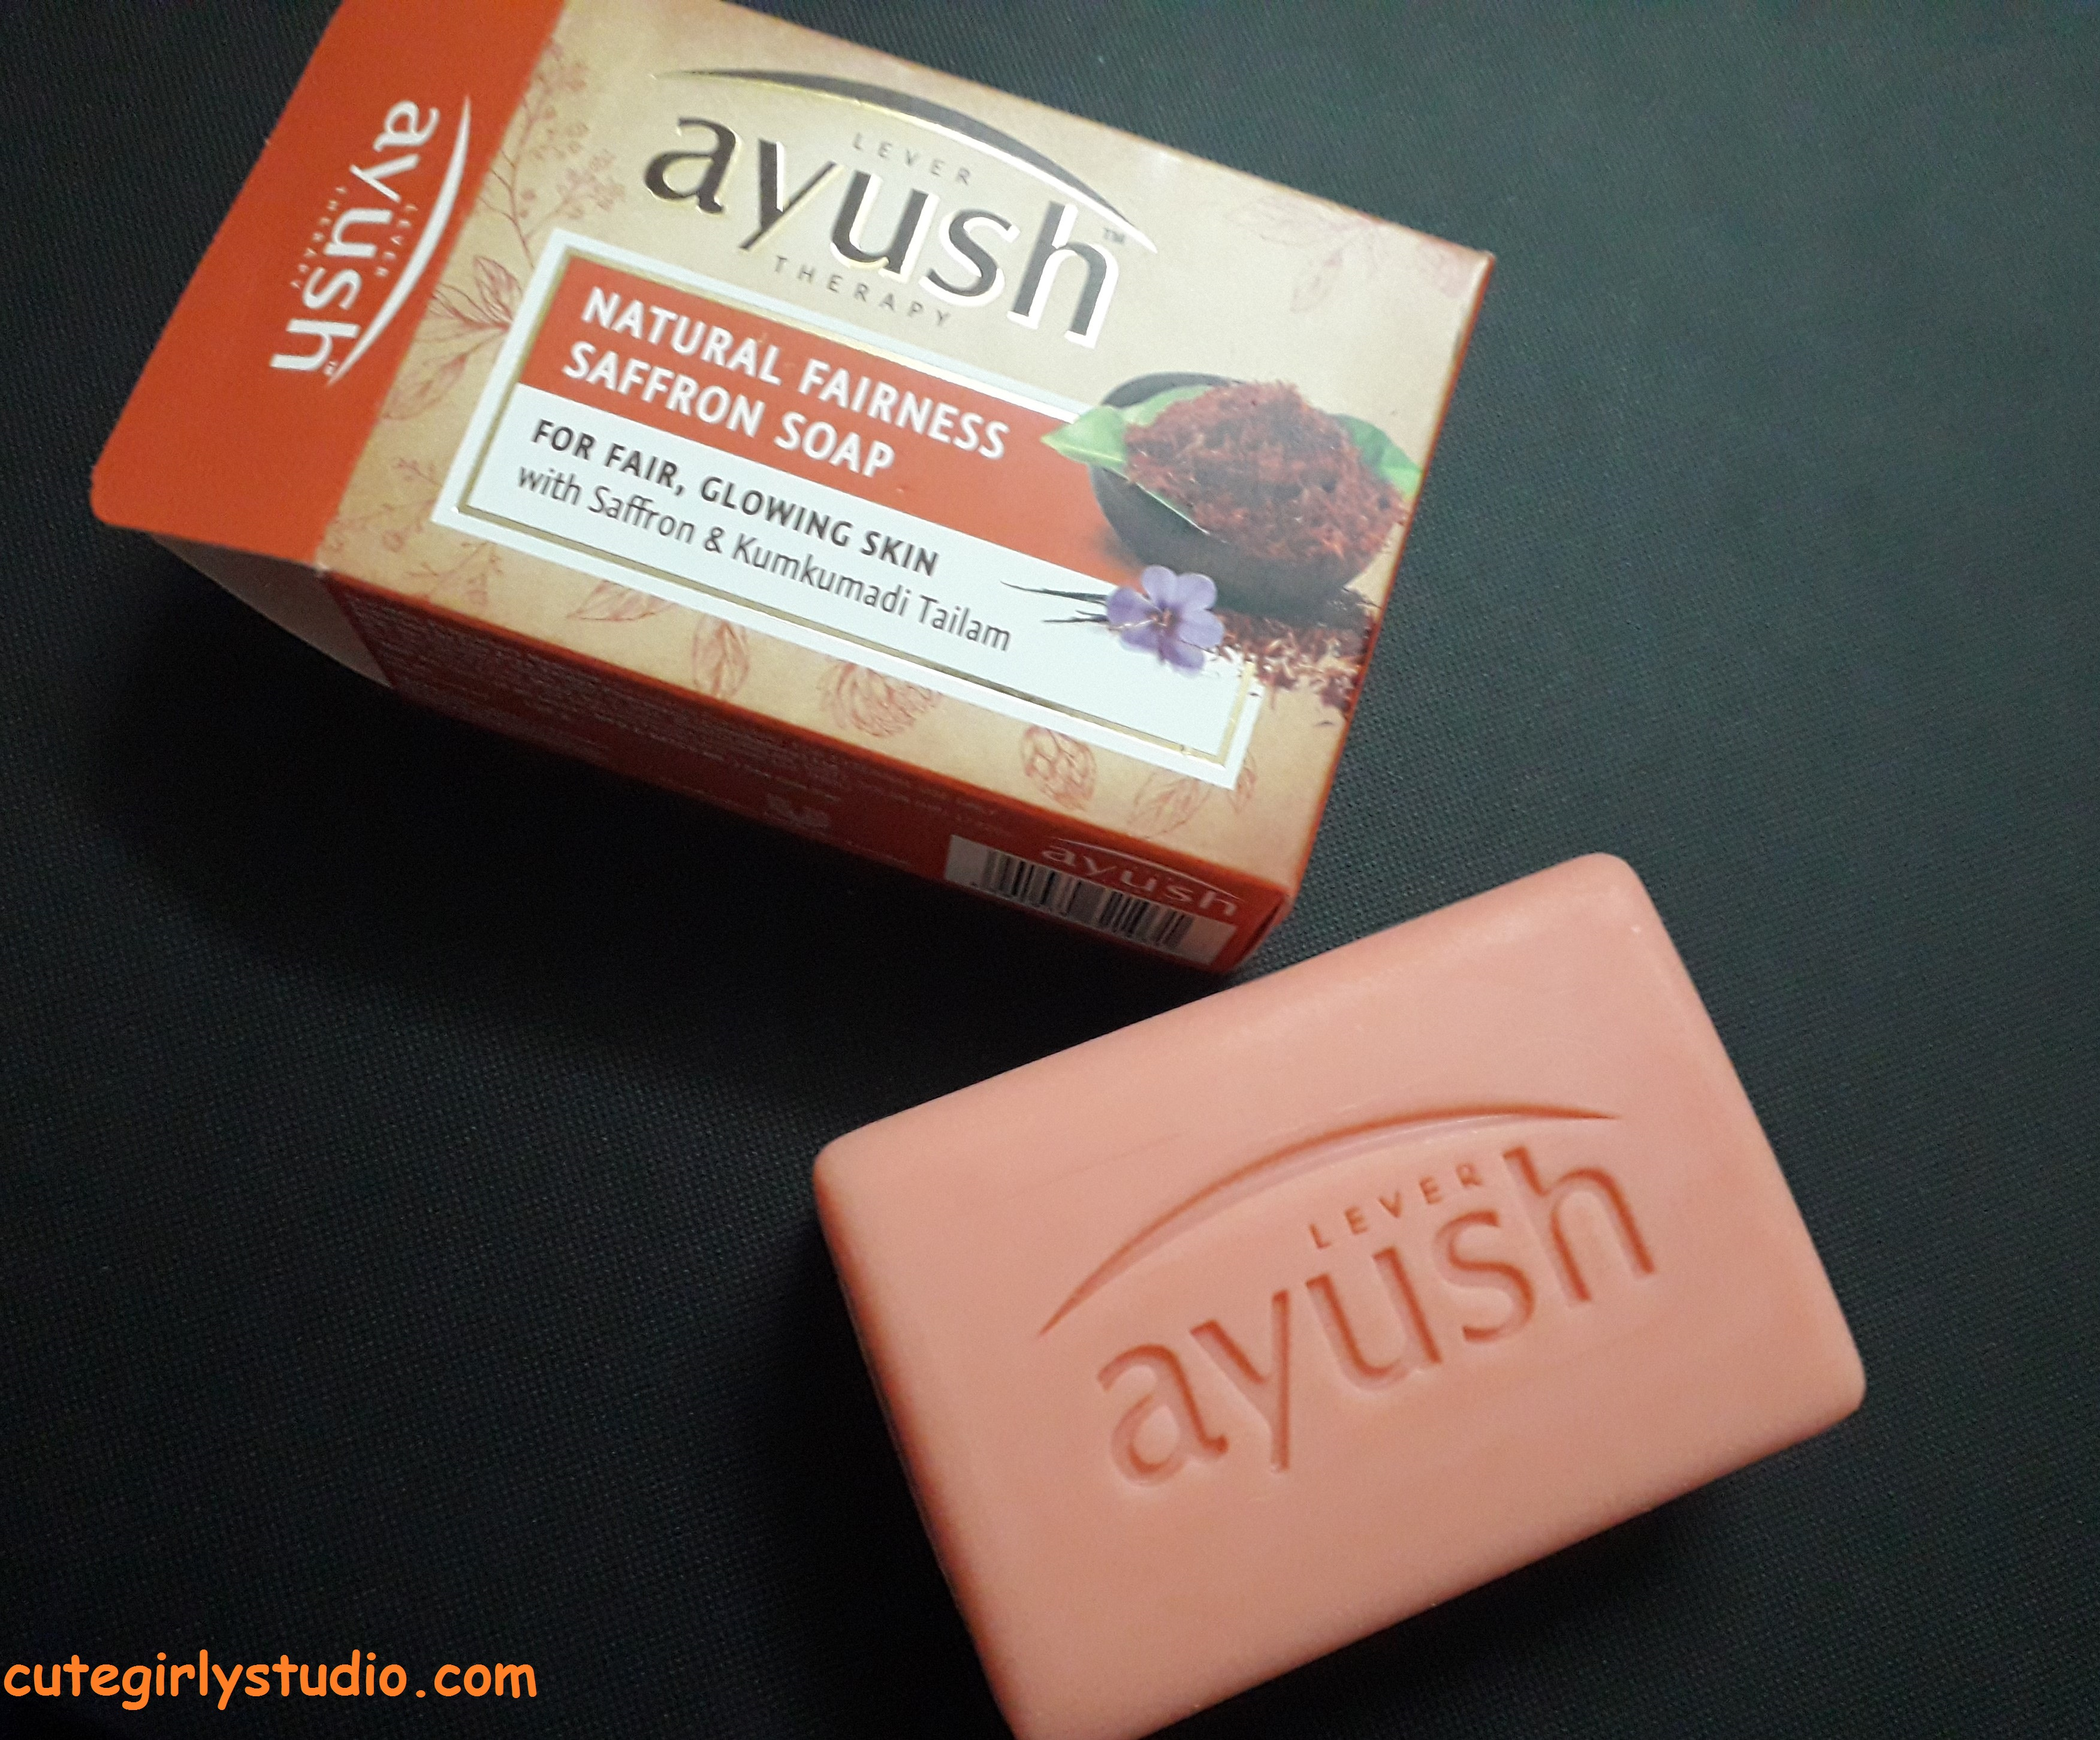 Lever ayush natural fairness soap review